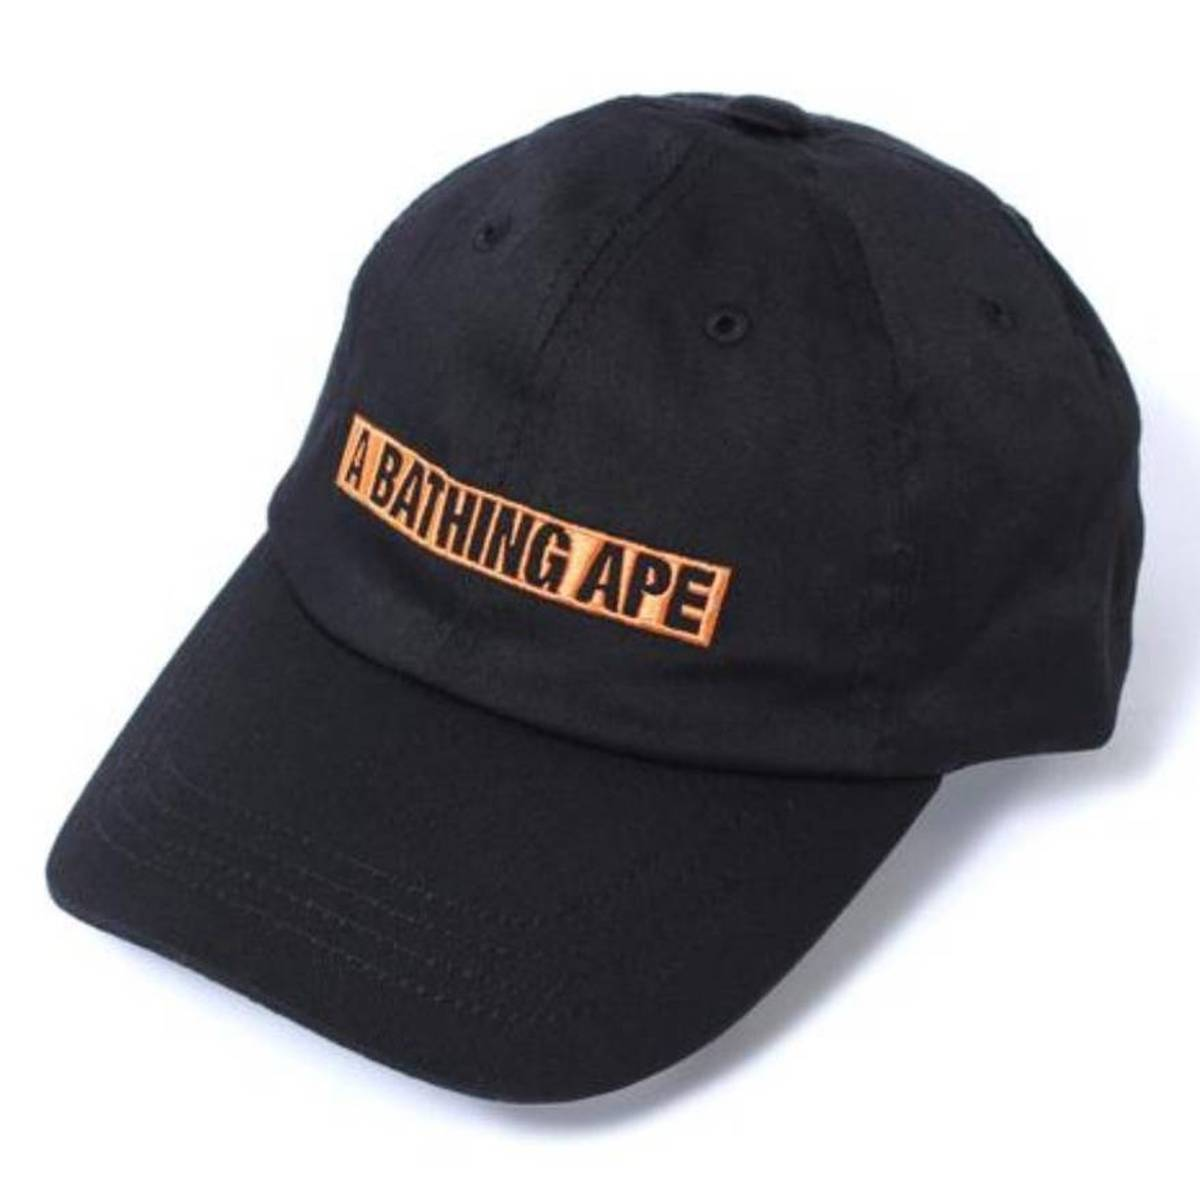 1422d95bbff4 Bape A BATHING APE BAPE DAD HAT CAP BOX LOGO BLACK ORANGE Size one ...